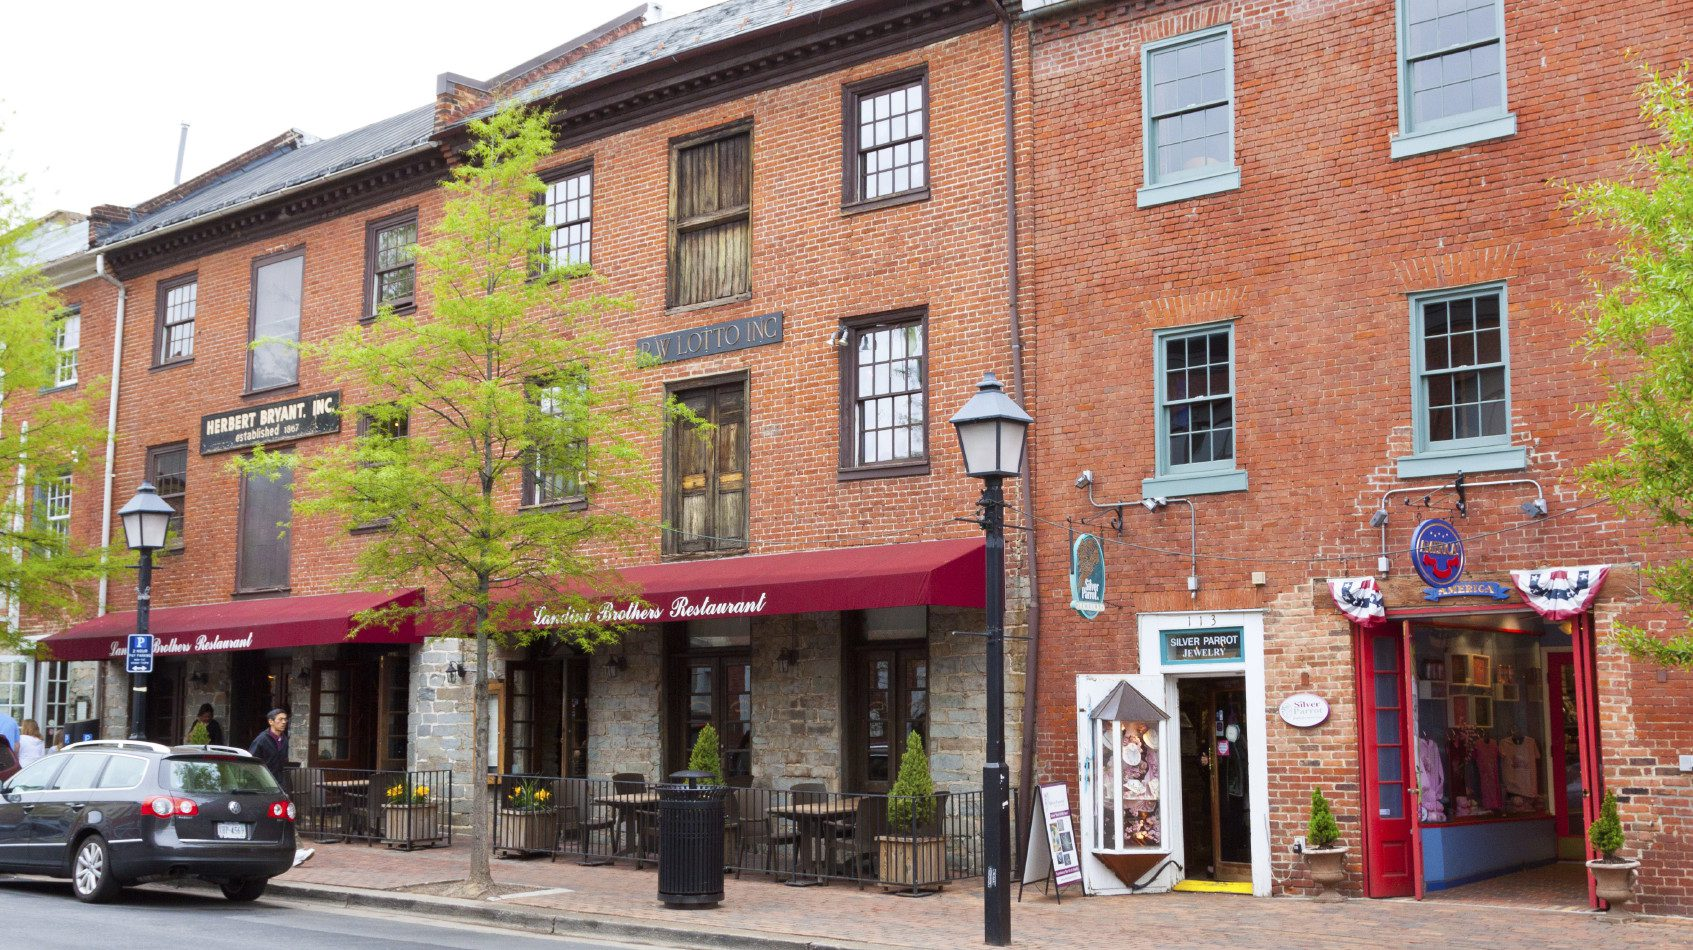 Alexandria, VA was crowned the top downtown of 2016 due to its charming mix of shops and restaurants as well as historic pedigree.